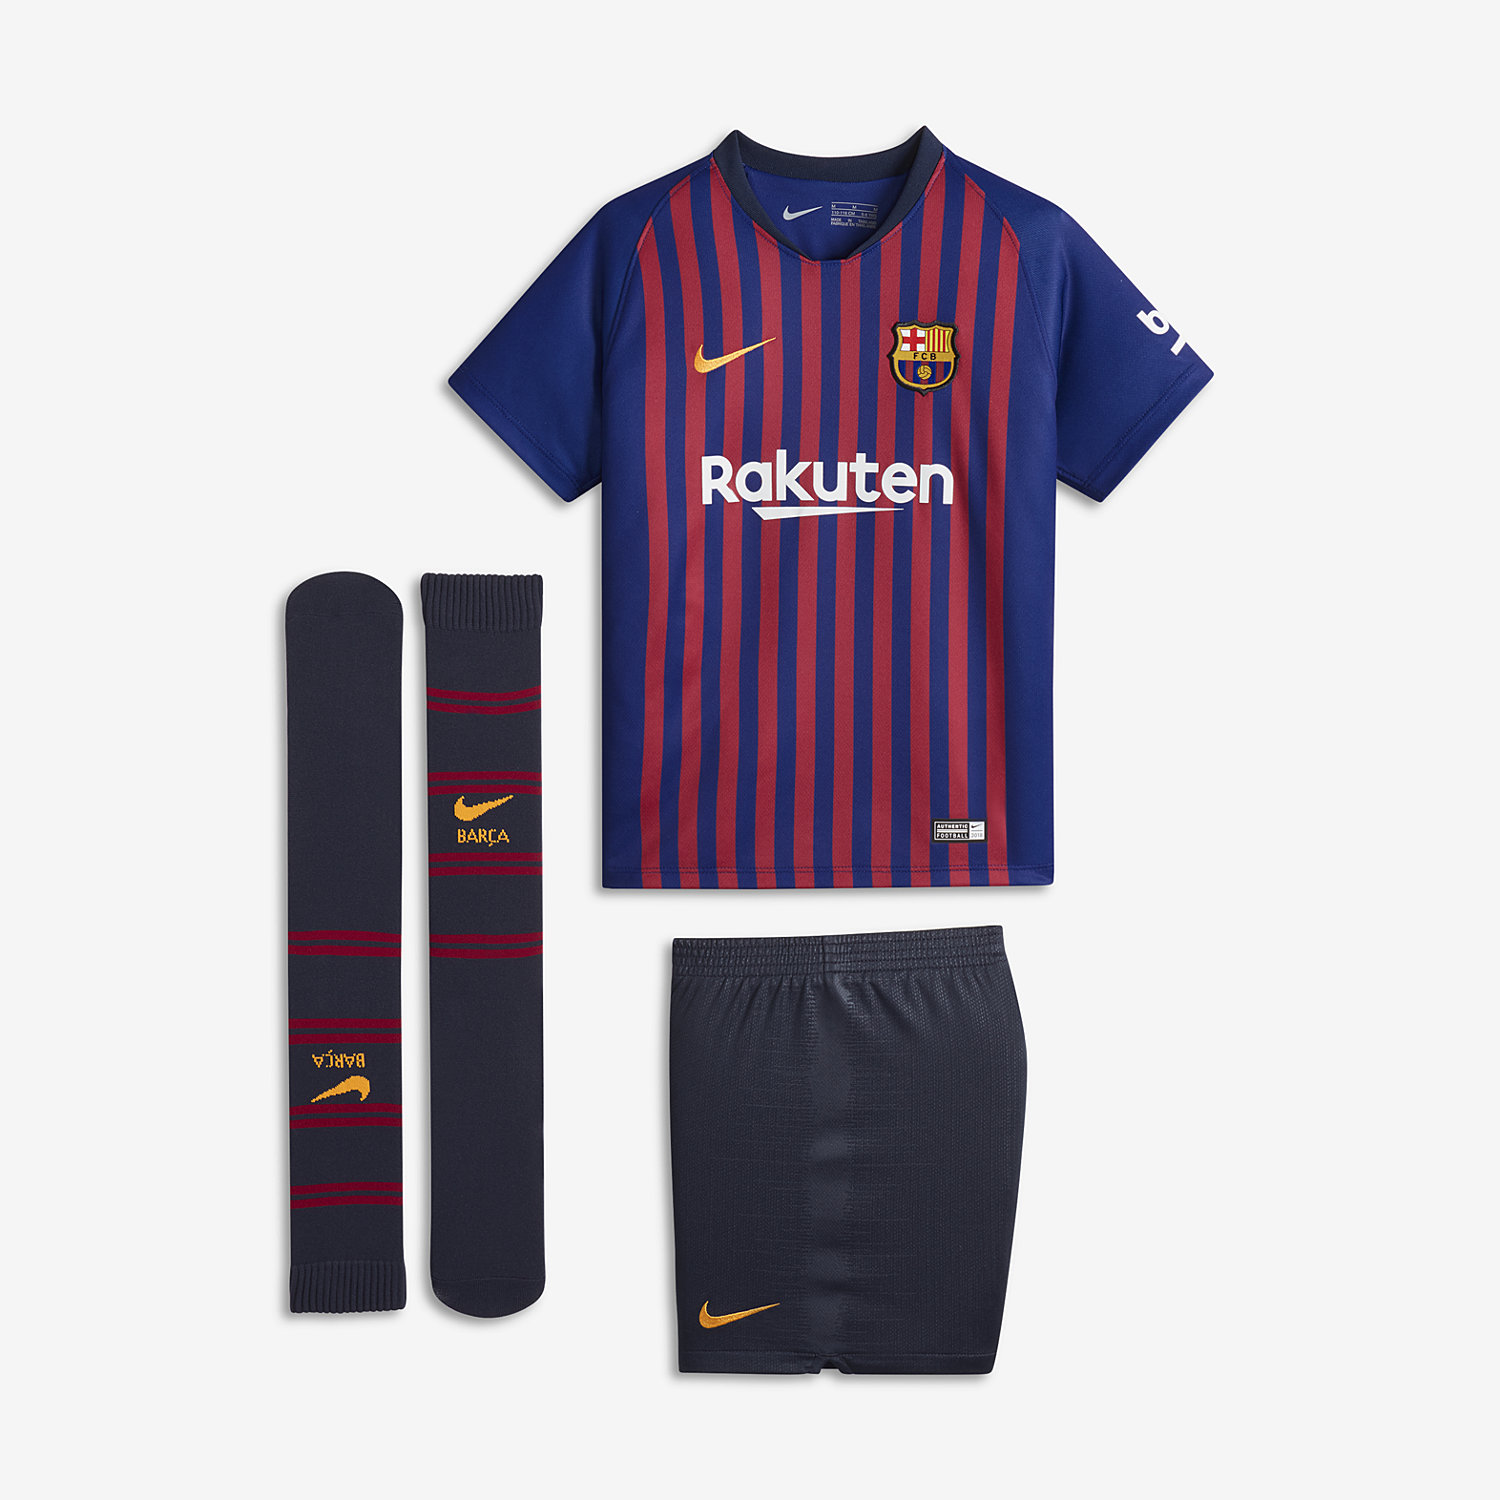 1e5896130 2018/19 FC Barcelona Stadium Home Younger Kids' Football Kit. Nike ...